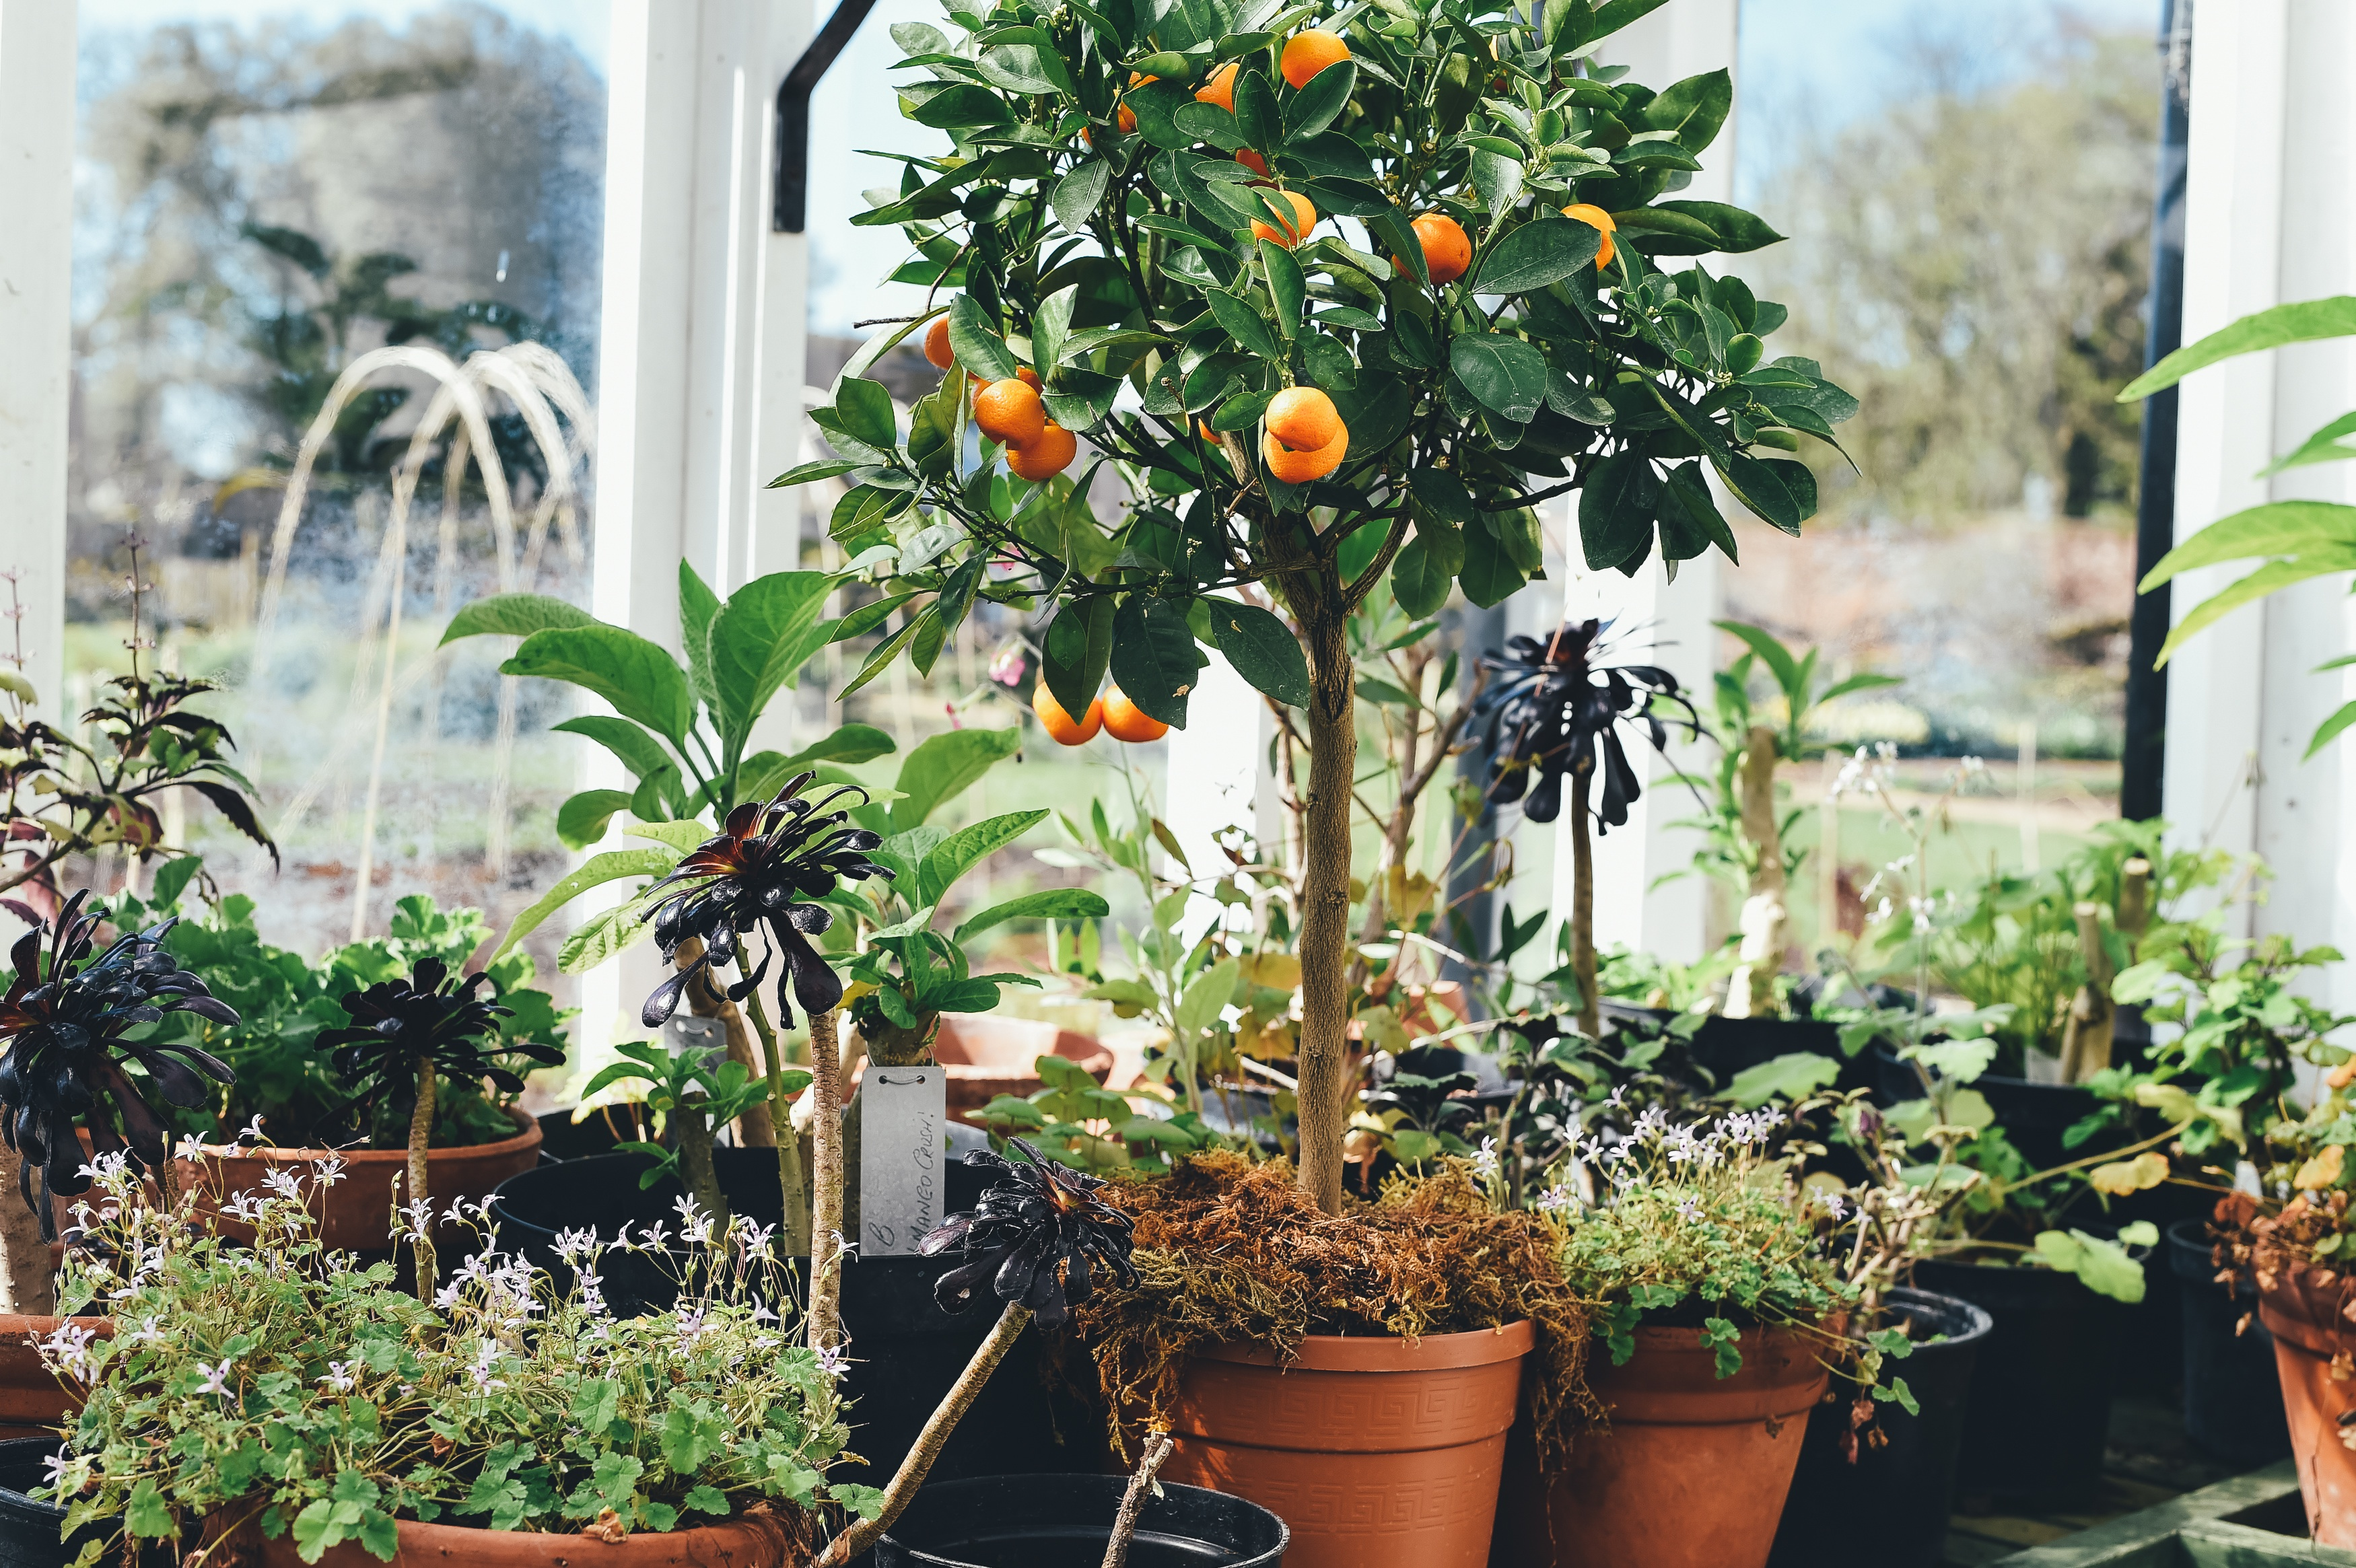 Strong light, high humidity and adequate water are keys to healthy citrus plants.